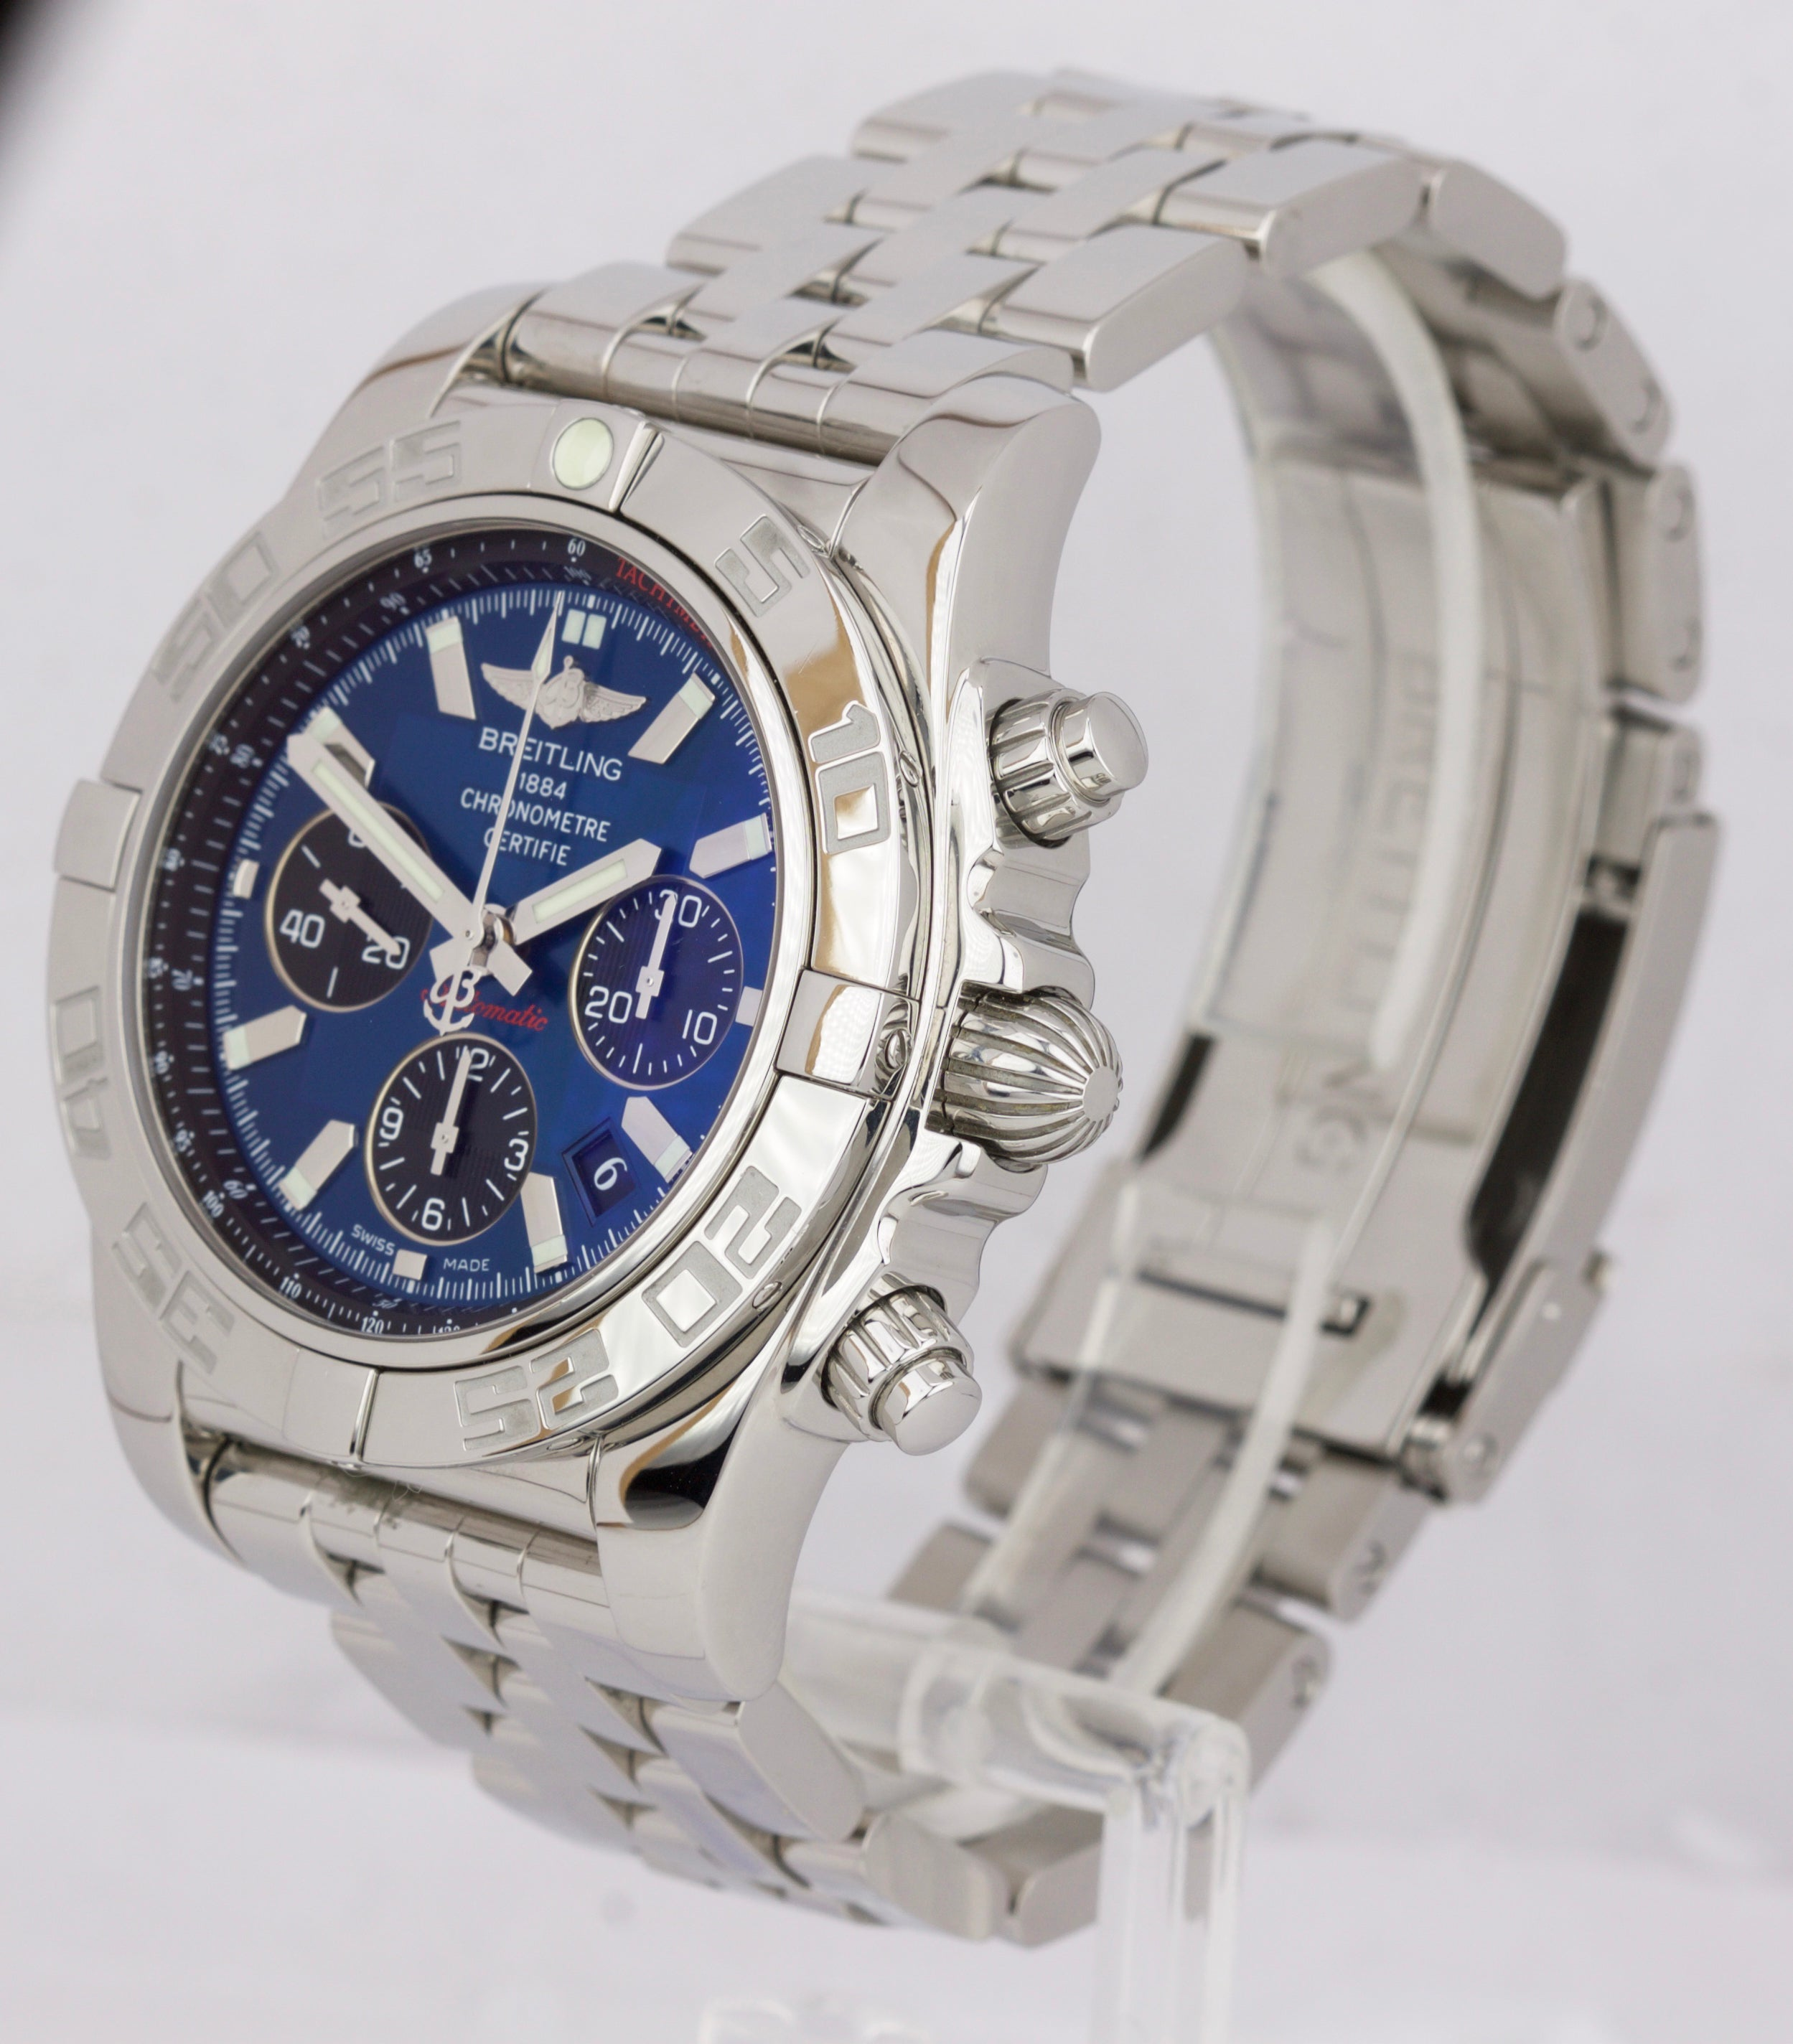 MINT Breitling Chronomat 44mm Stainless Steel Blue AB0110 Chronograph Watch